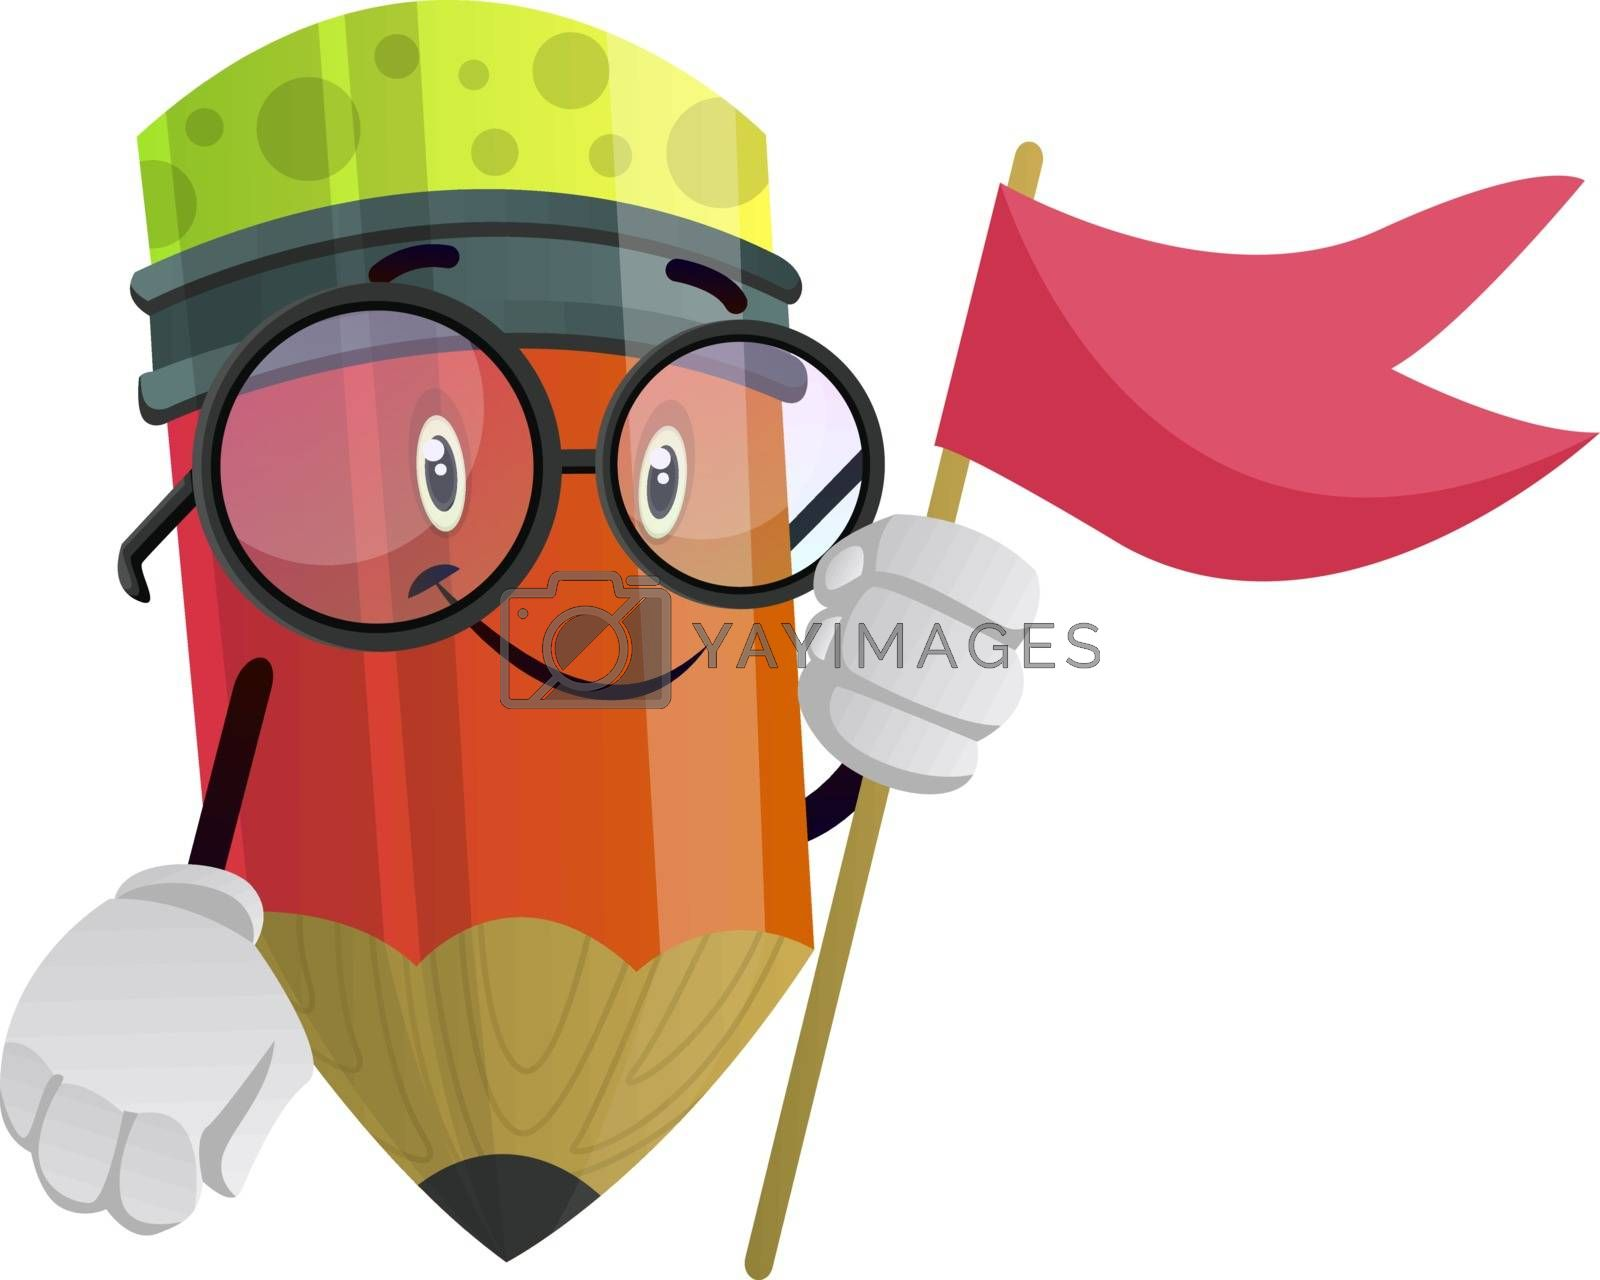 Royalty free image of Red flag in red pencils hands illustration vector on white backg by Morphart